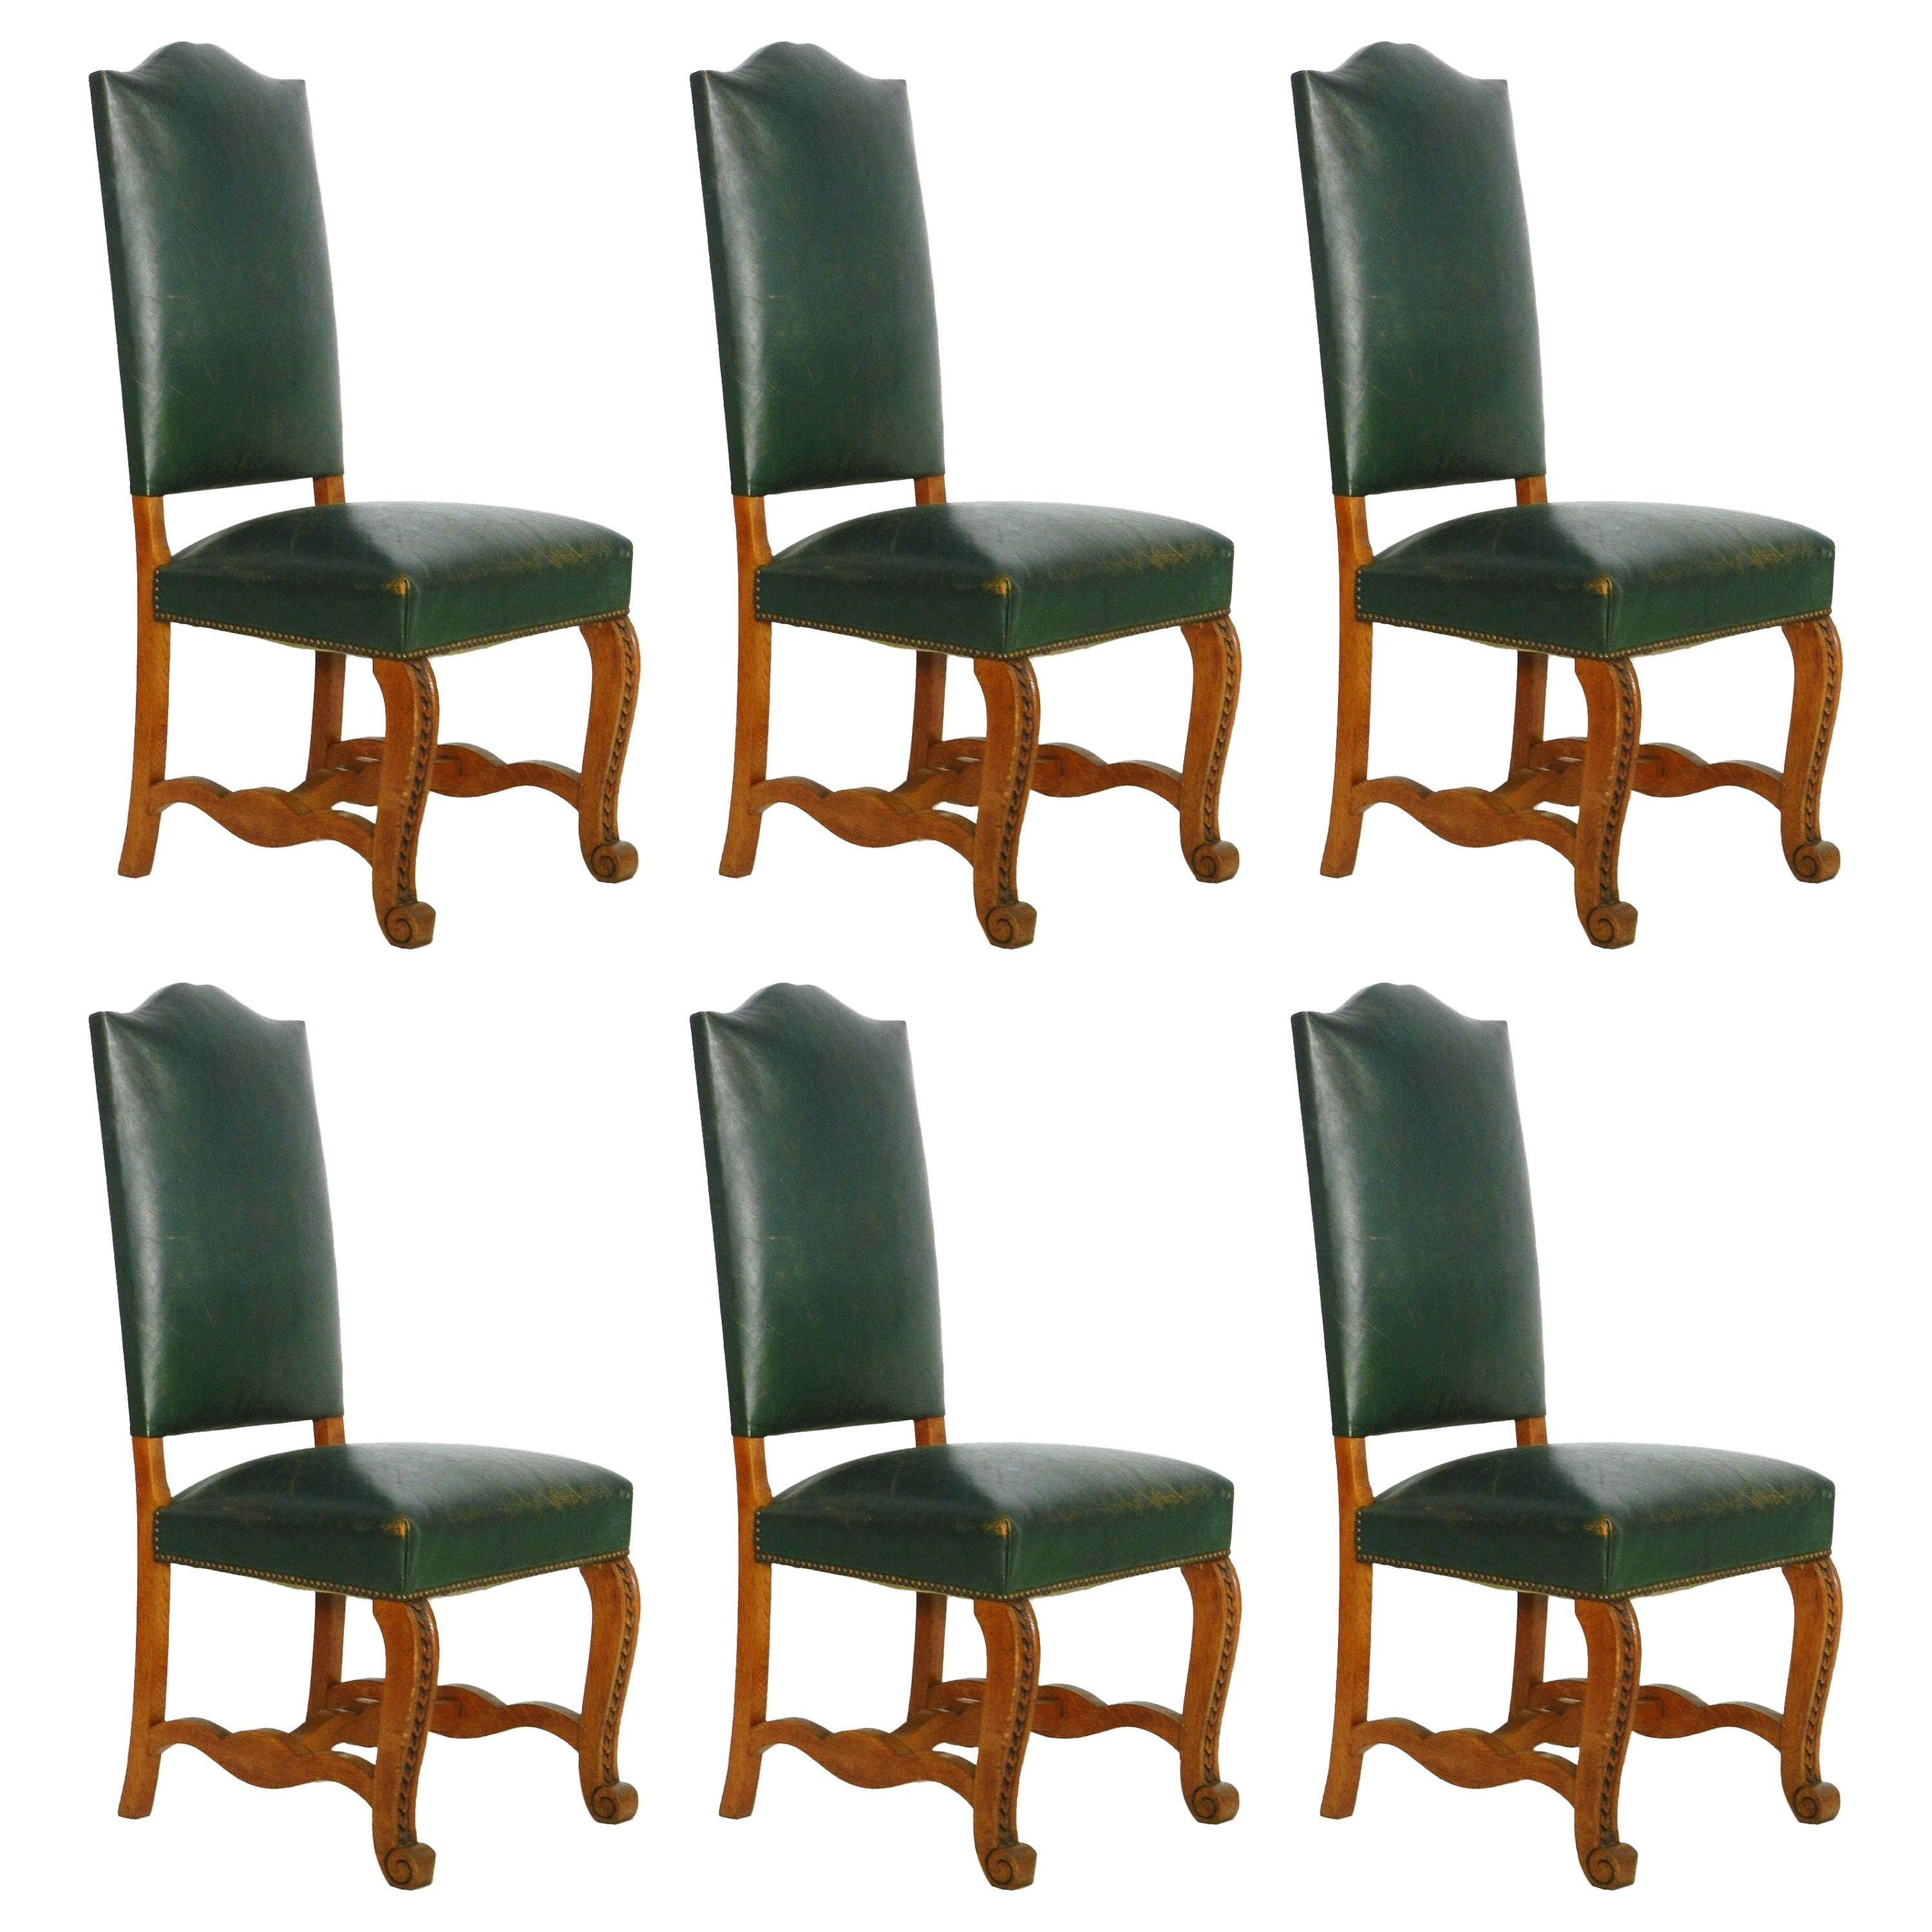 Studded Dining Chairs Six Dining Chairs Green Leather Upholstered French Circa 1920